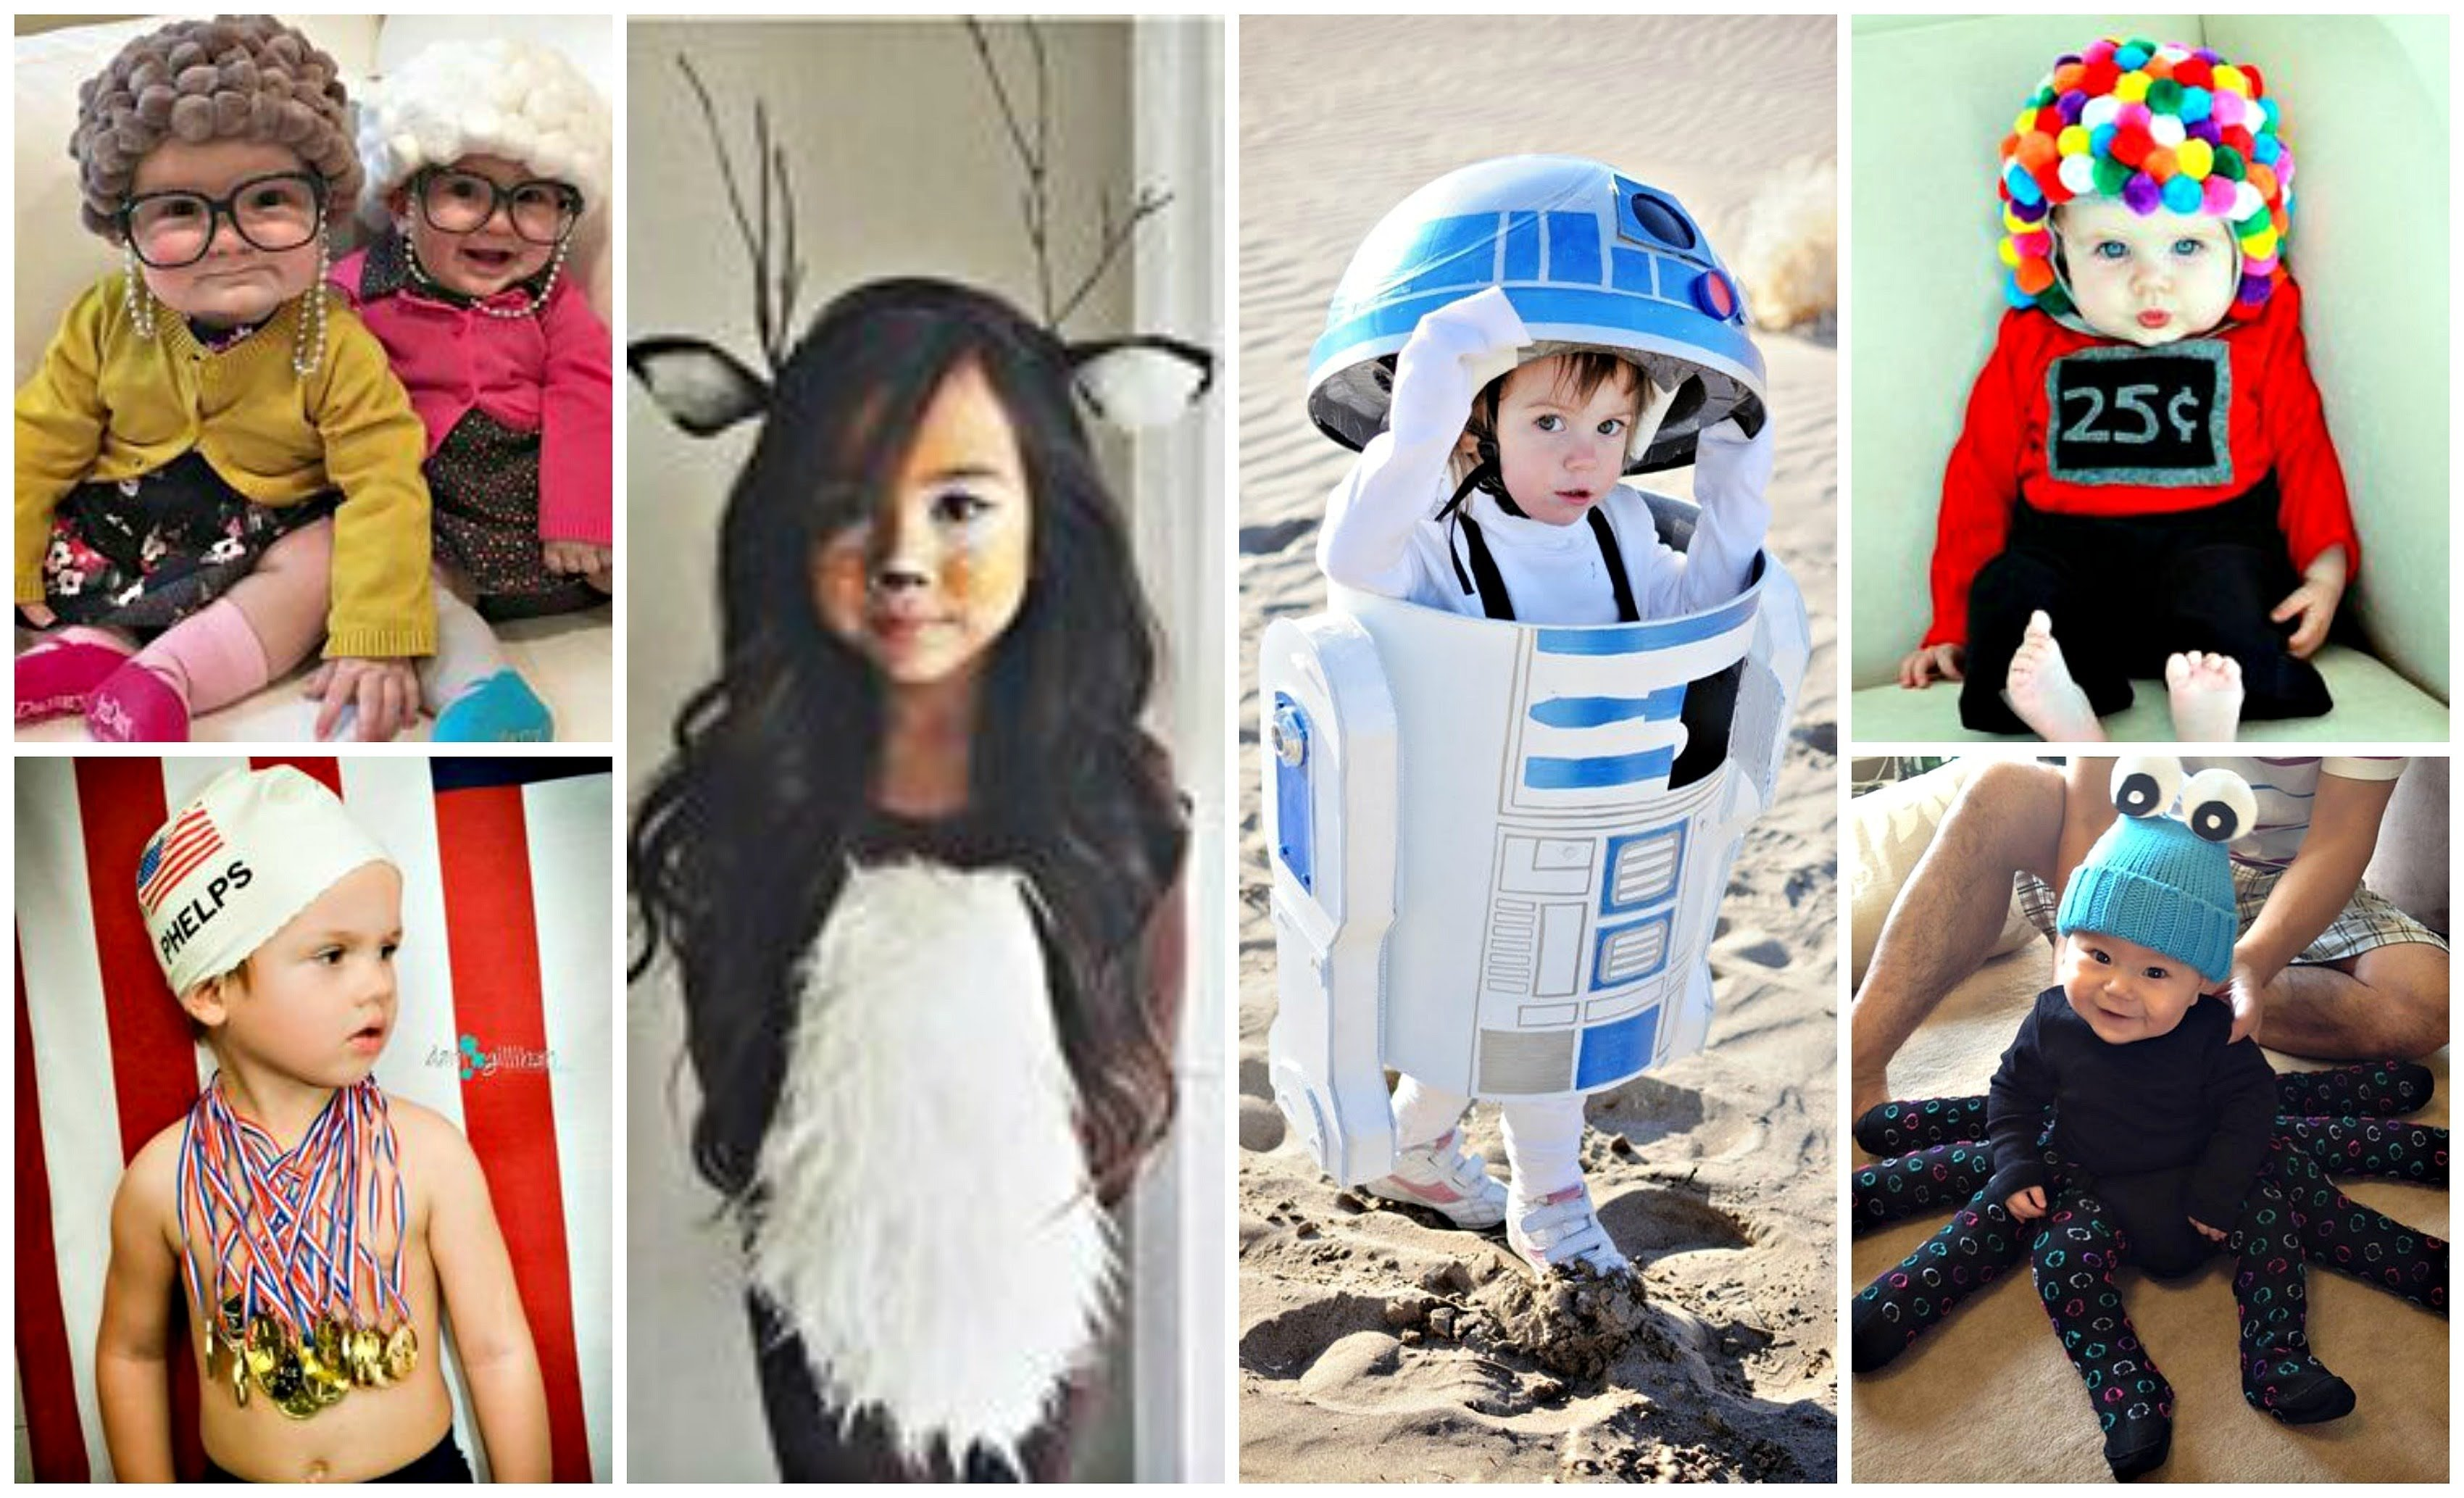 10 Stylish Homemade Costume Ideas For Boys diy halloween costume ideas for kids toddlers youtube 8 2020